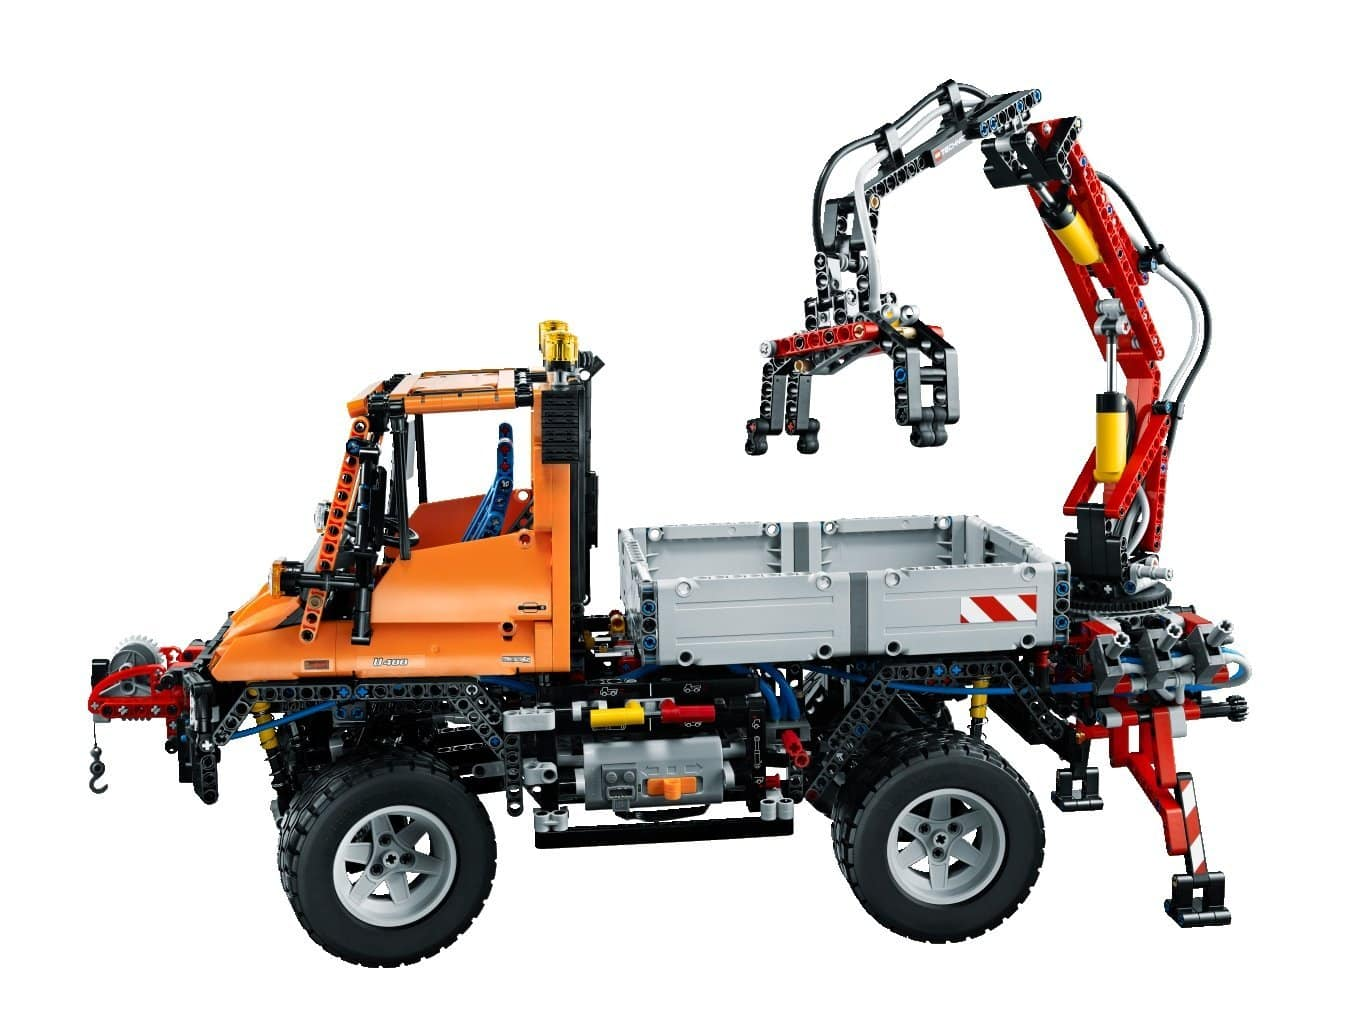 lego technic unimog u400 ratgeberspiel. Black Bedroom Furniture Sets. Home Design Ideas